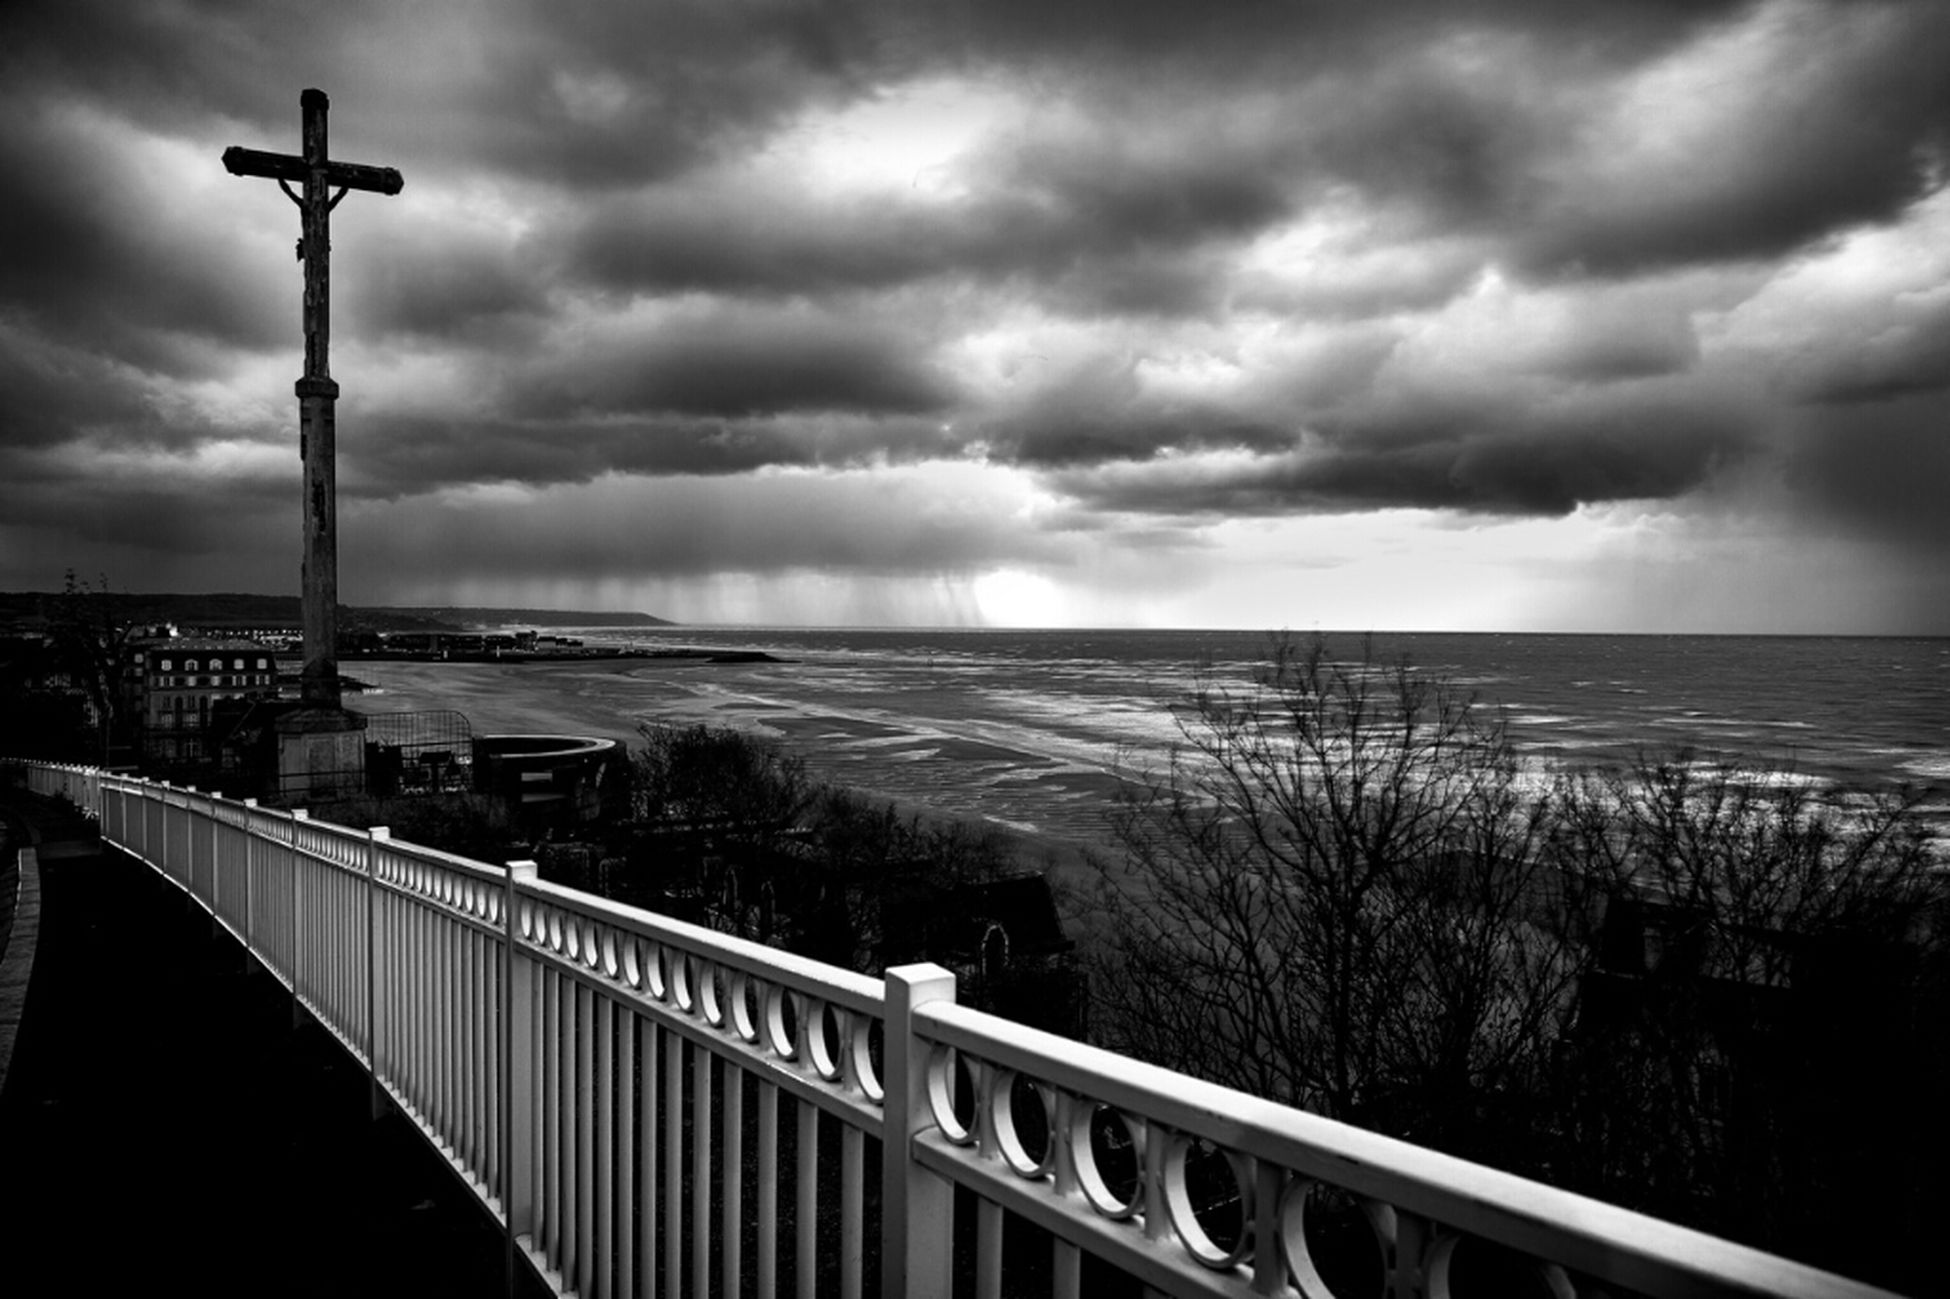 sky, cloud - sky, cloudy, sea, water, weather, scenics, tranquil scene, railing, tranquility, beauty in nature, storm cloud, horizon over water, nature, cloud, overcast, fence, idyllic, street light, dramatic sky